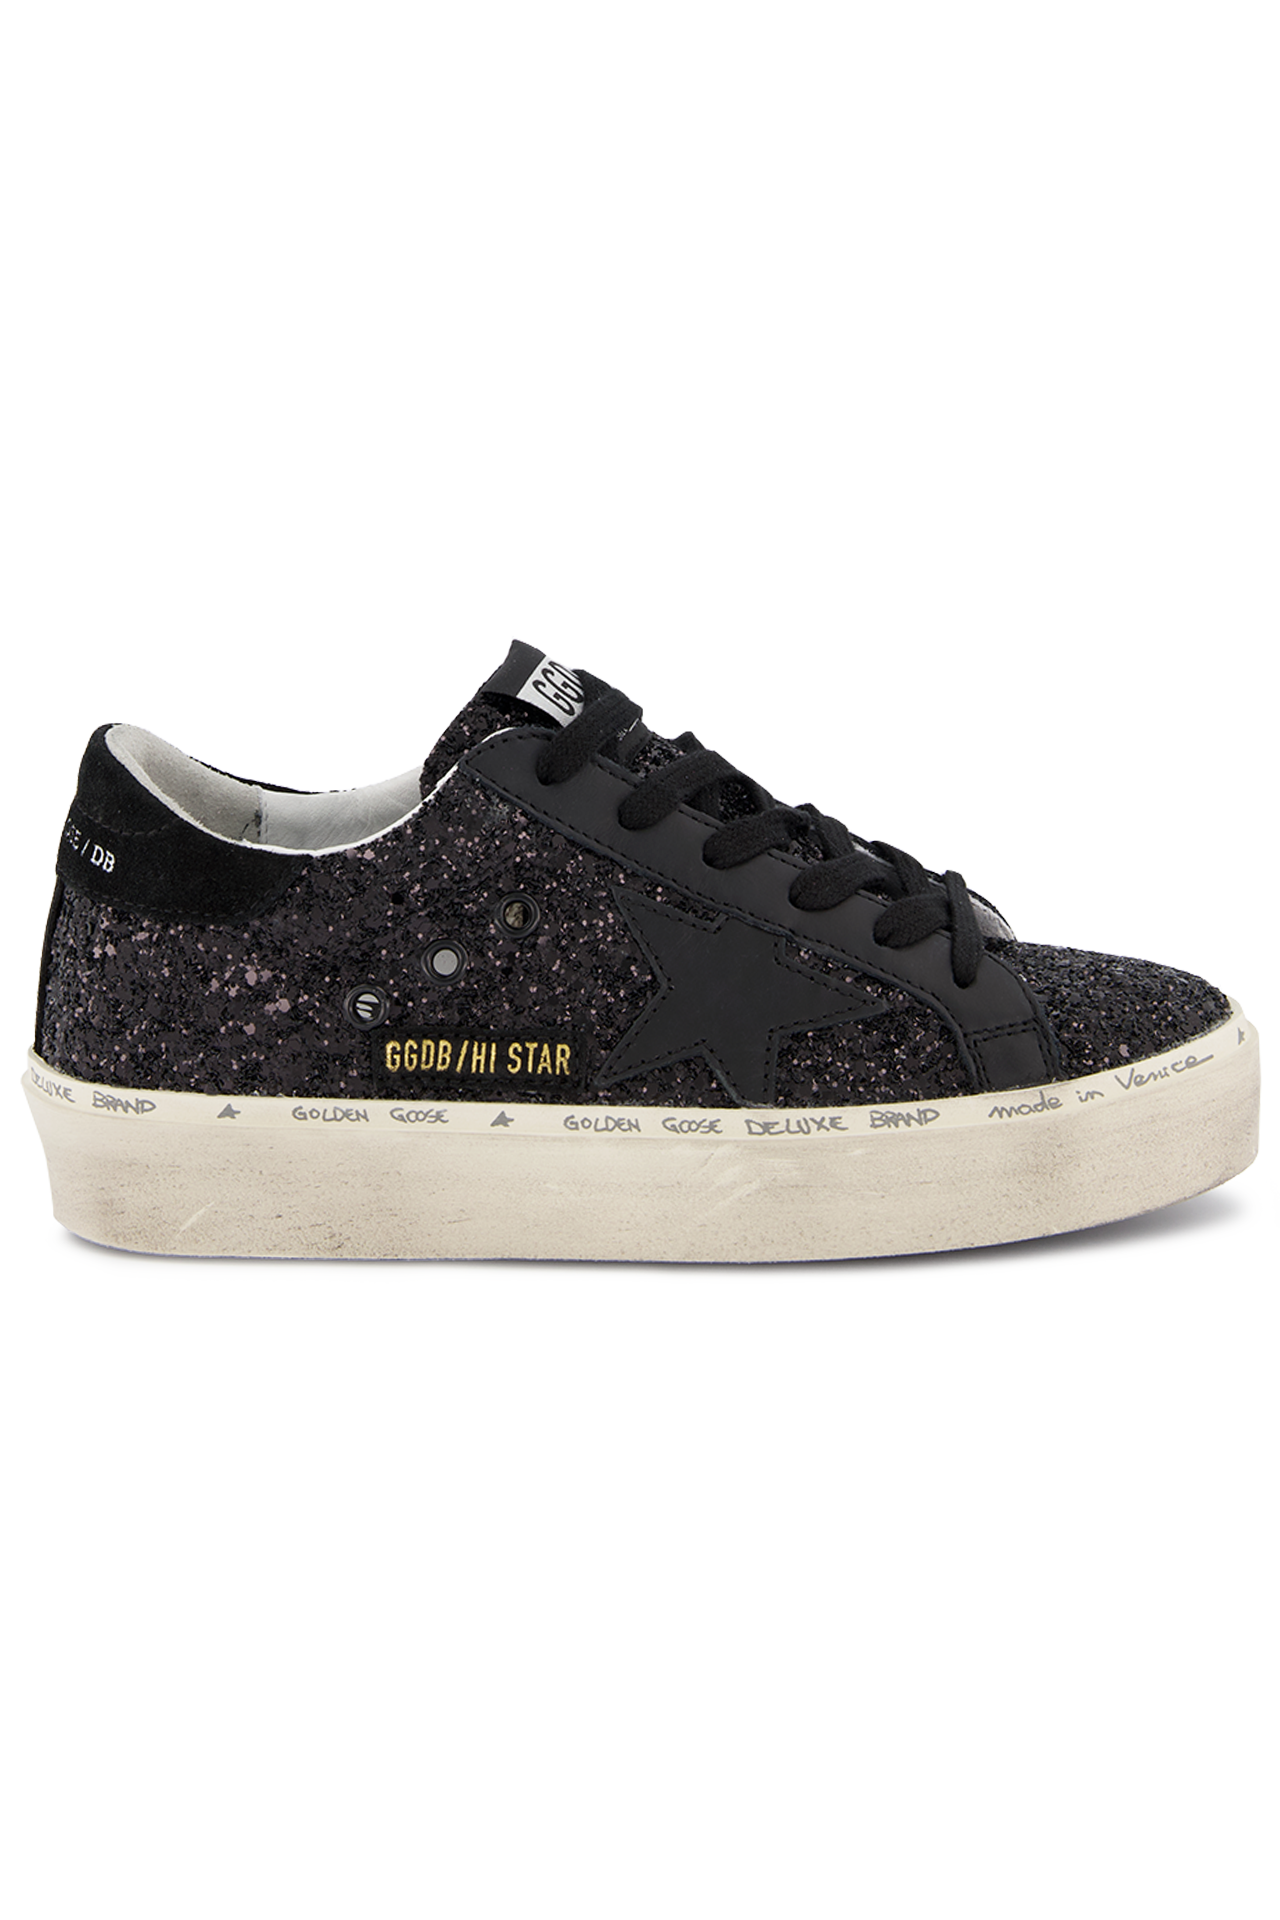 Front Image of Golden Goose Hi Star Sneaker Black Glitter